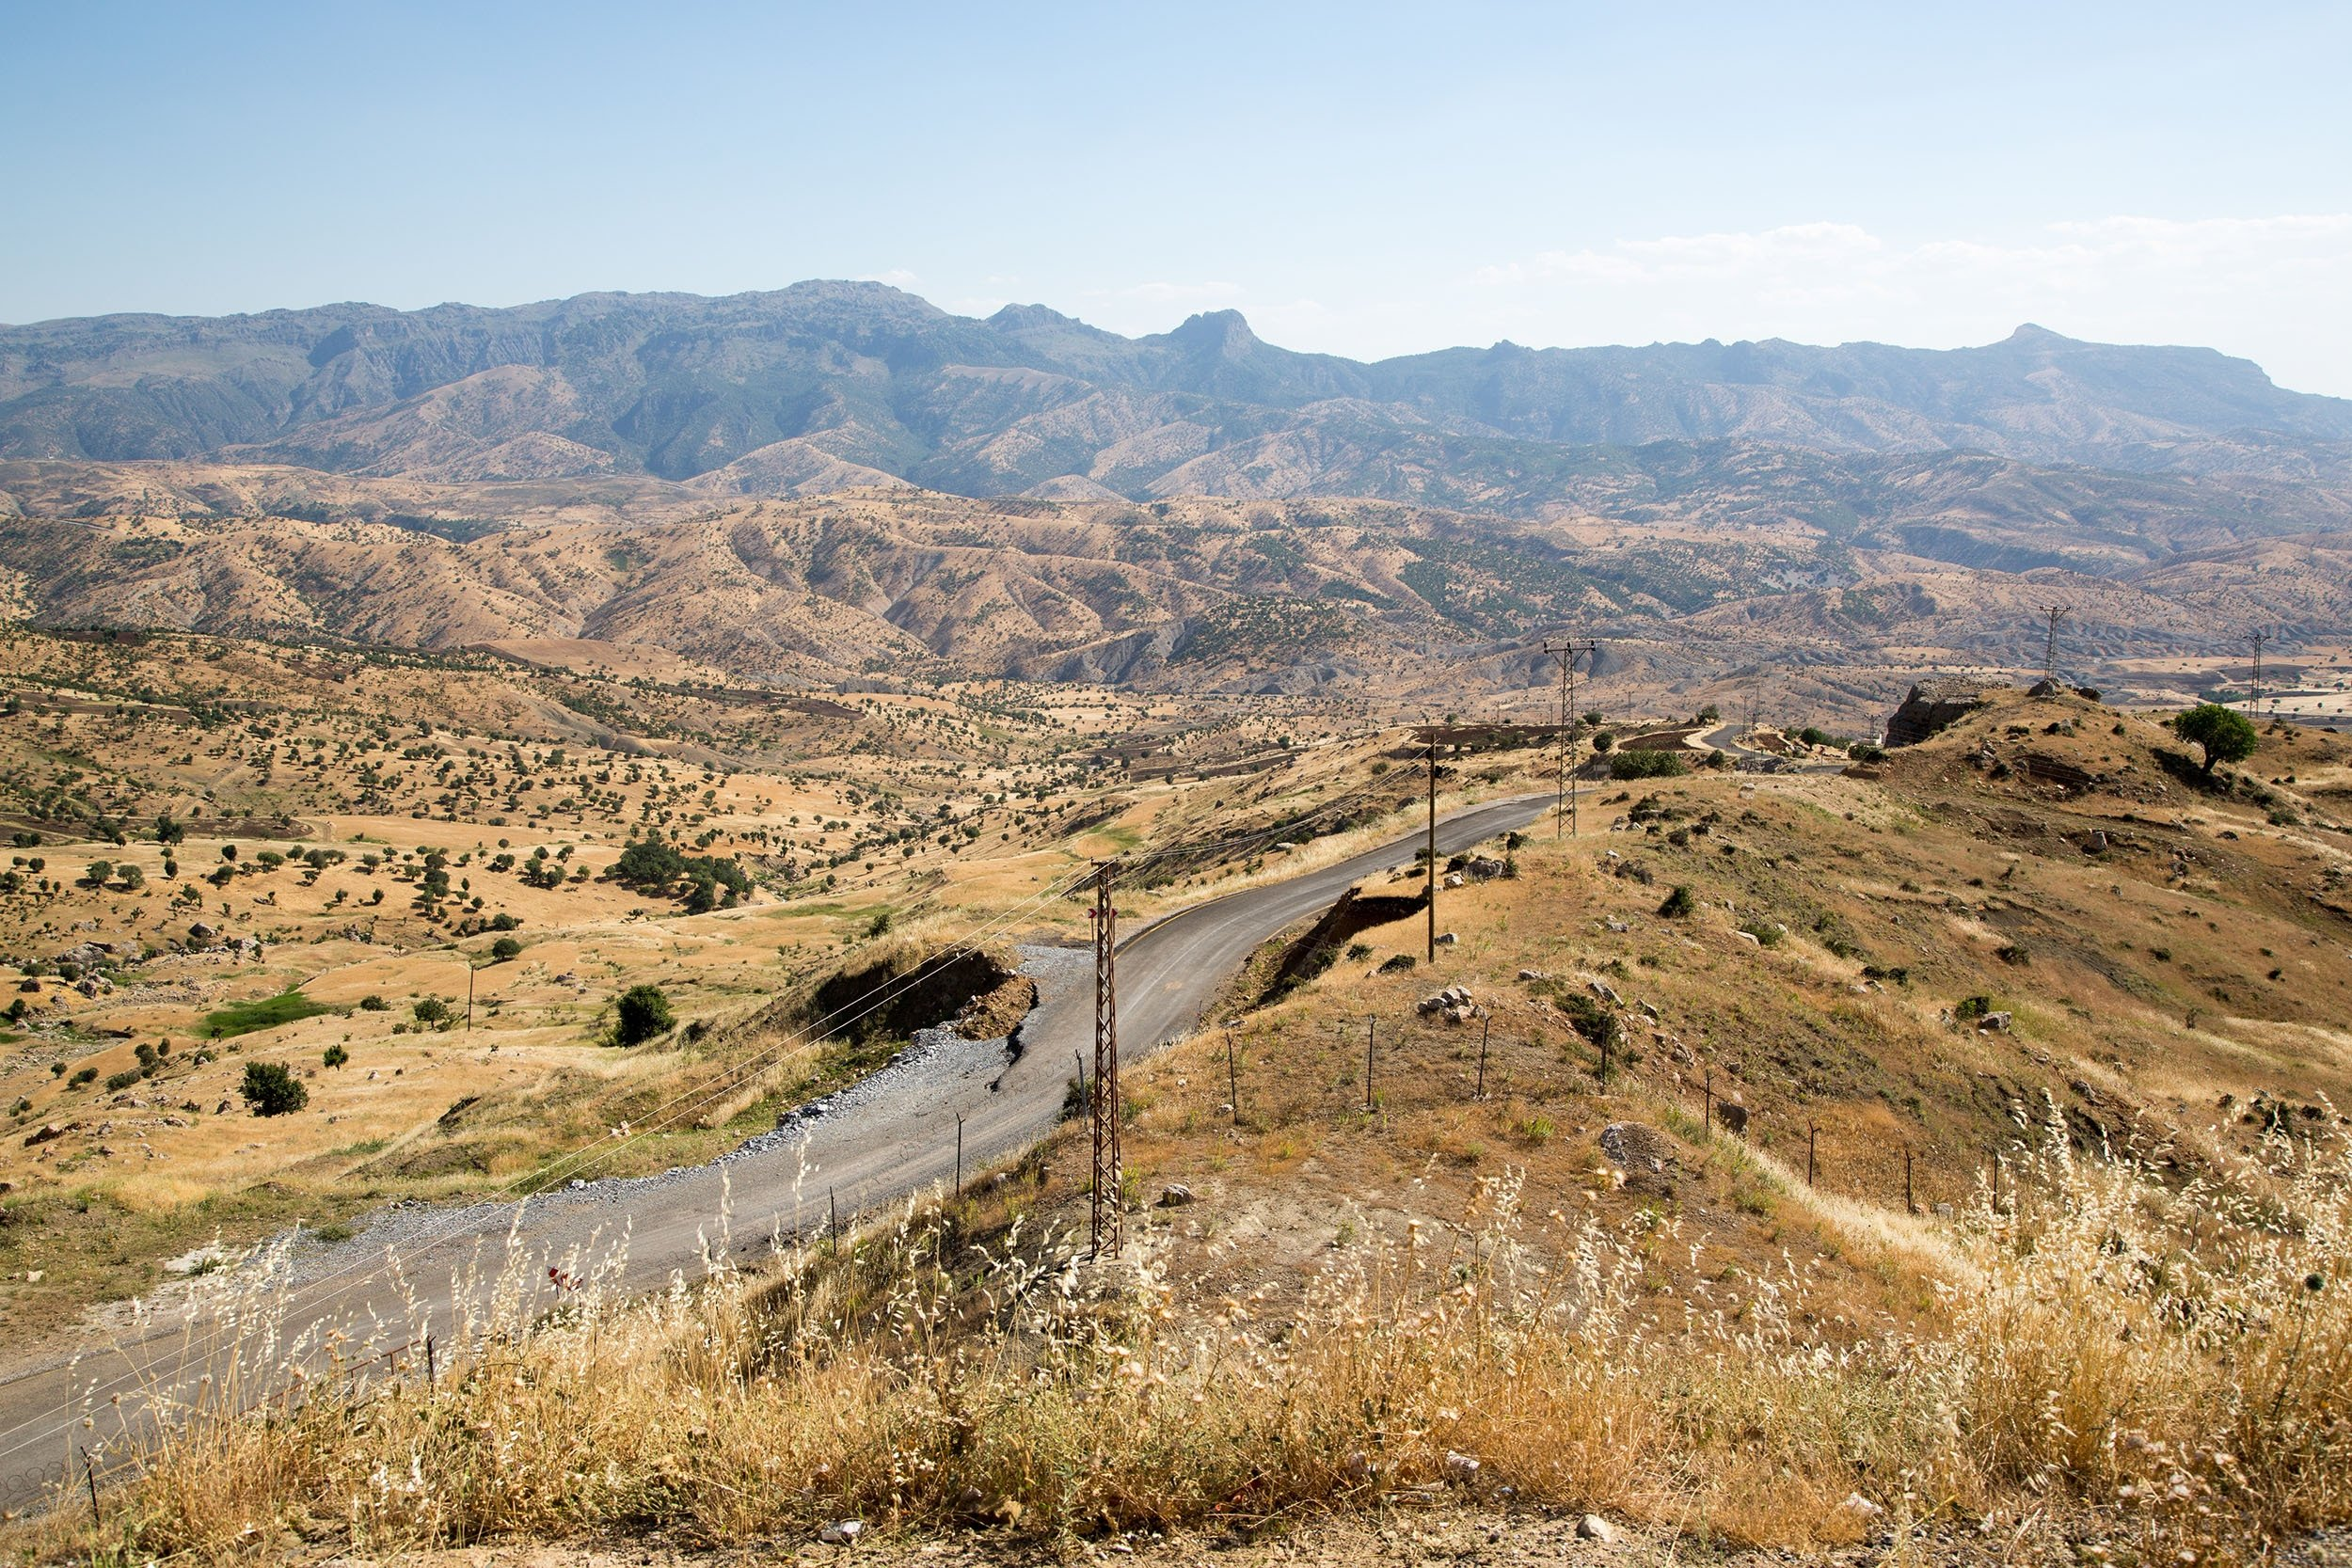 According to Islamic belief, the place where Noah's Ark descended after the flood is Mount Judi, Şırnak, southeastern Turkey. (Shutterstock Photo)